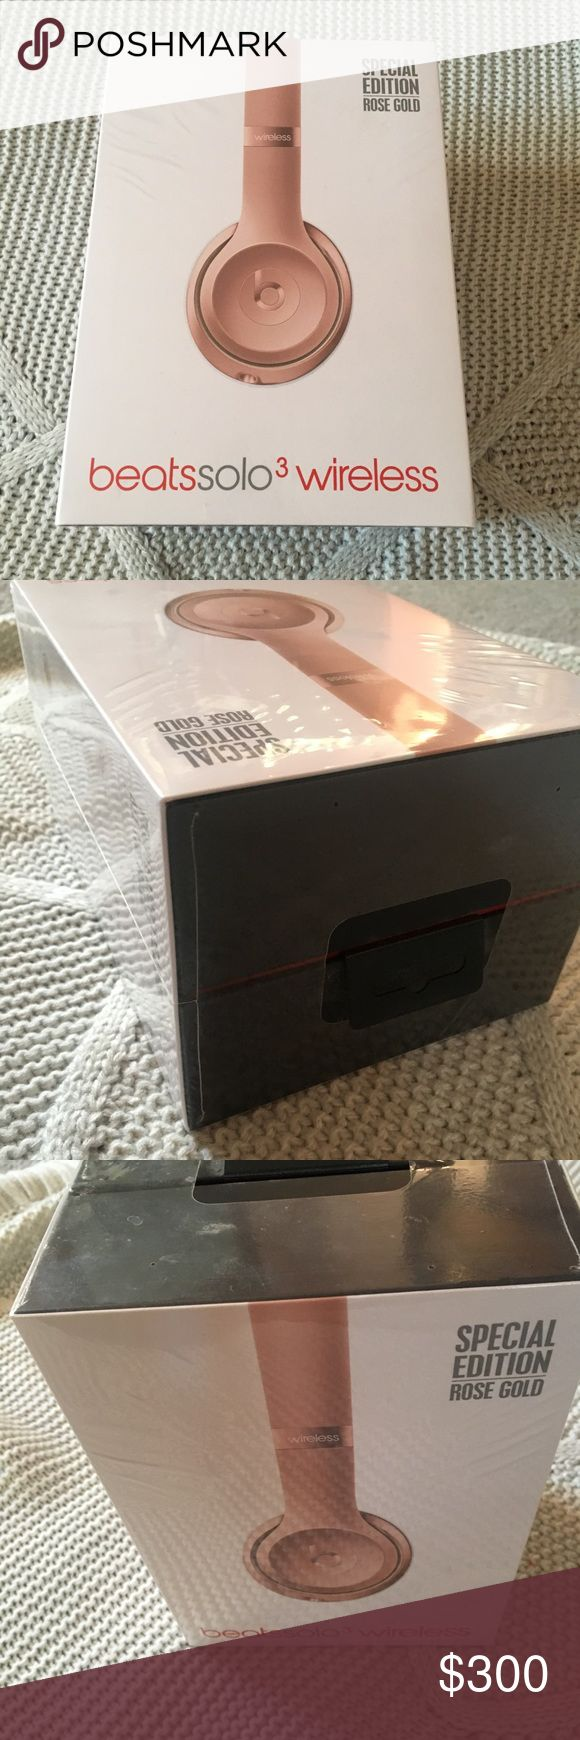 Solo3 Wireless Beats Headphones Never used still in box! Rose Gold Wireless Headphones beats by dre Other